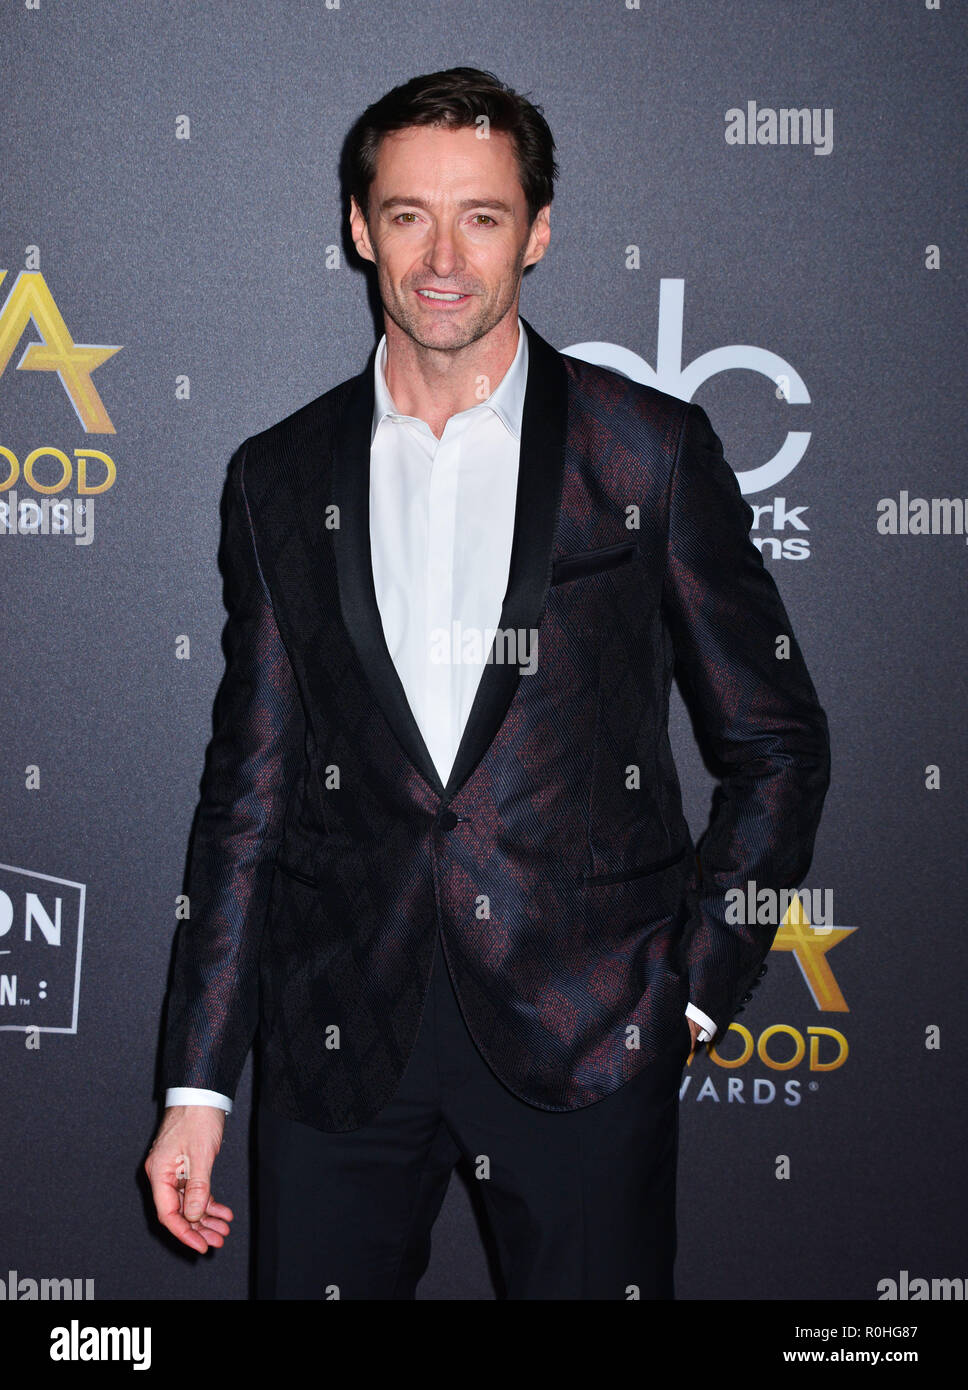 Hollywood, California, USA. 04th Nov, 2018. Hugh Jackman 120 attends the 22nd Annual Hollywood Film Awards at The Beverly Hilton Hotel on November 4, 2018 in Beverly Hills, California. Credit: Tsuni / USA/Alamy Live News - Stock Image